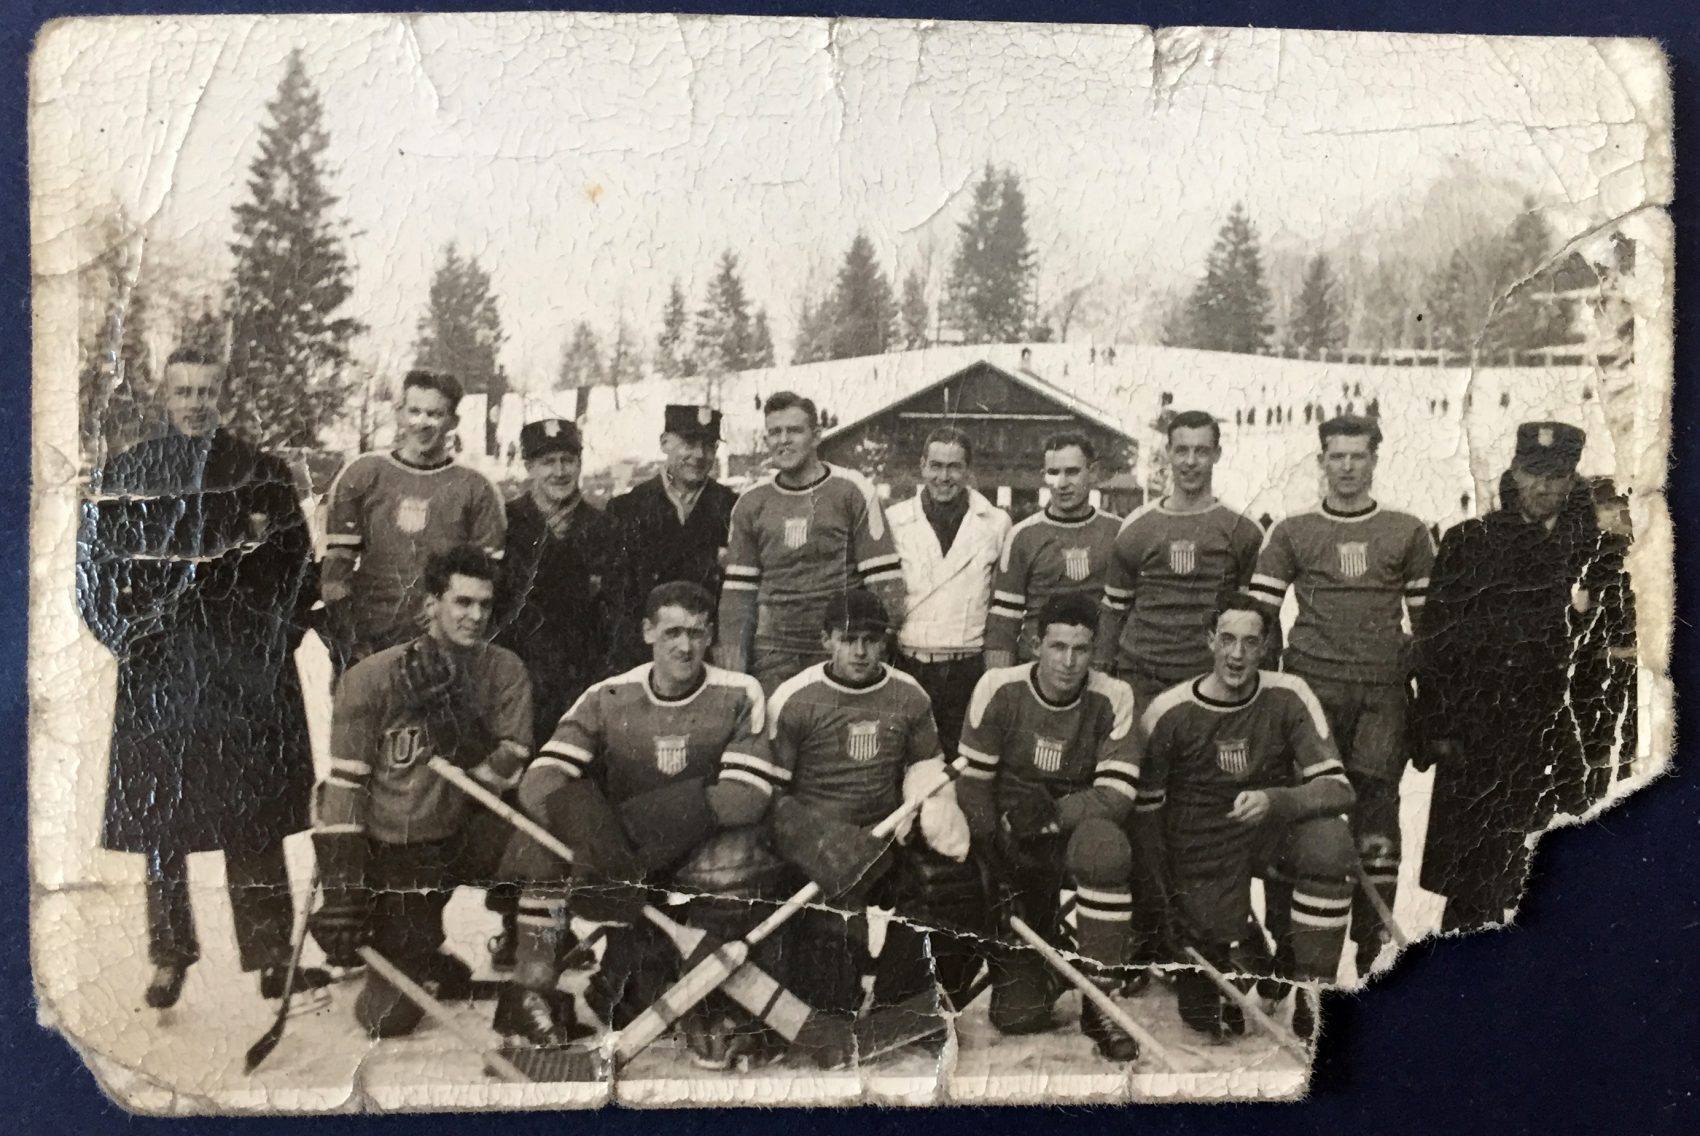 The 1936 U.S. Olympic hockey team in Germany. Francis Baker is third from  the left